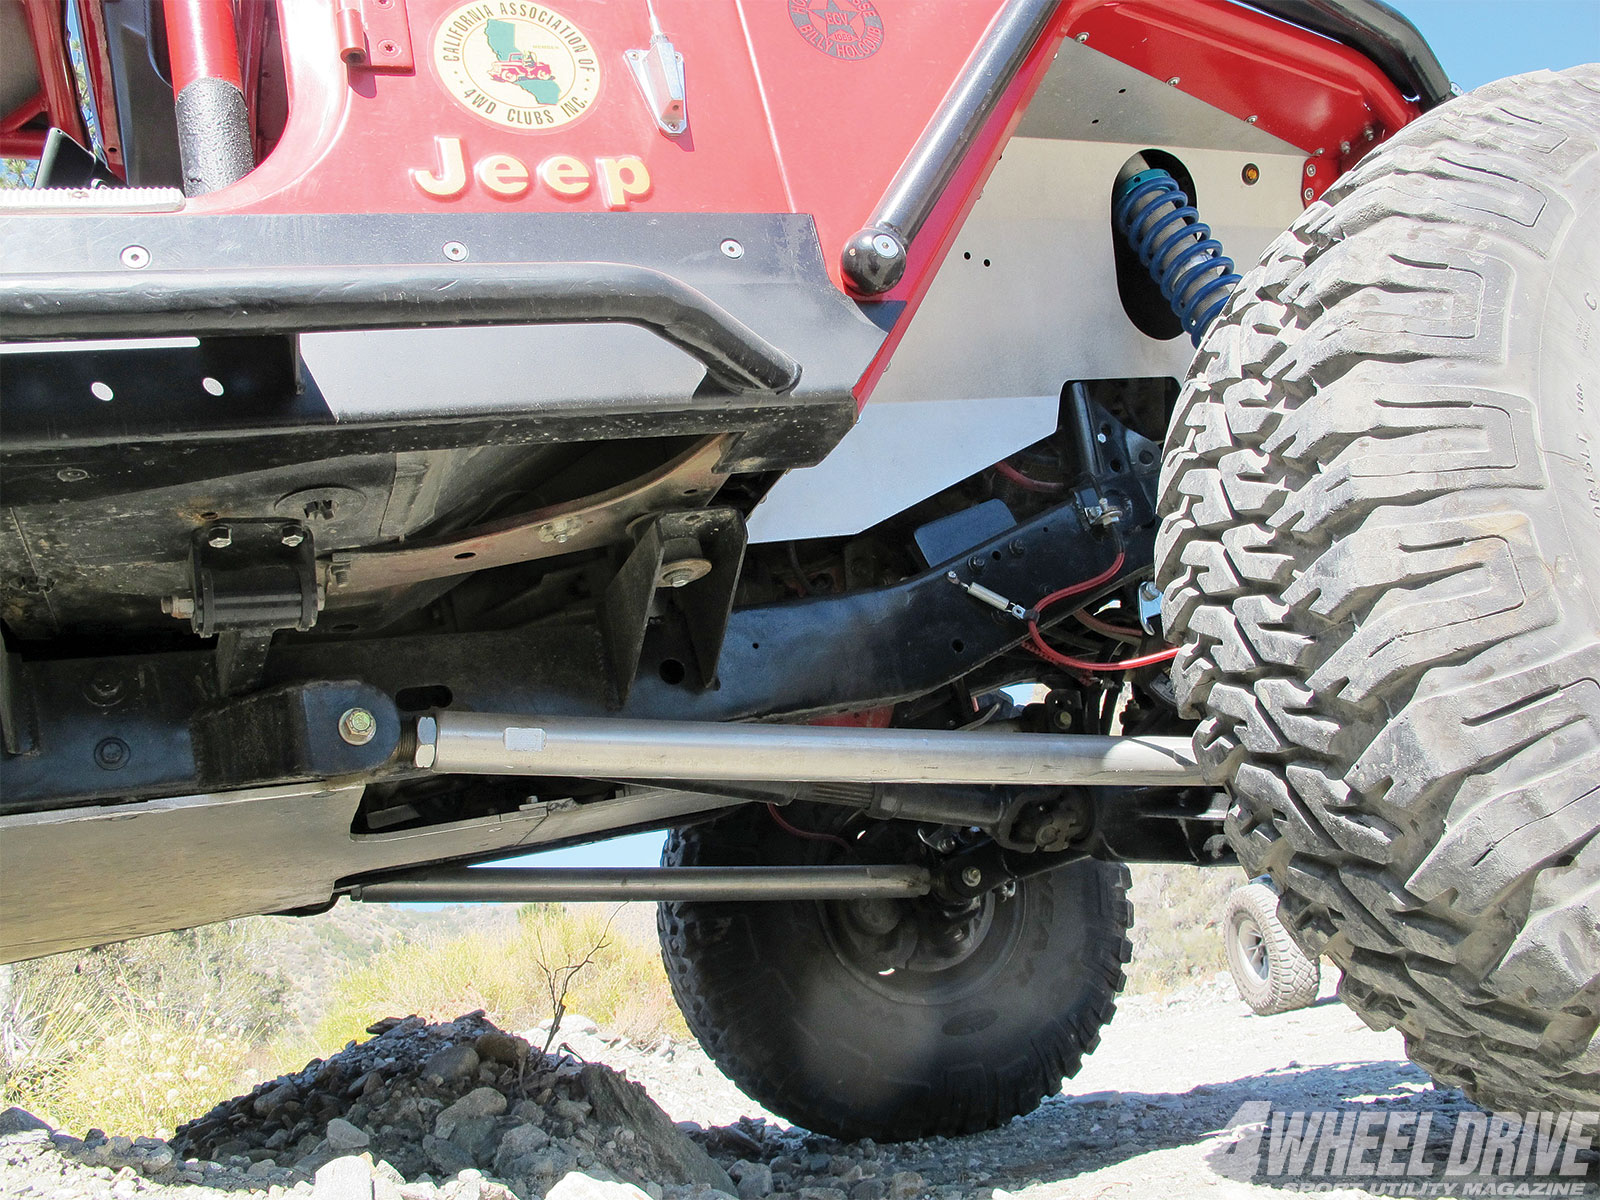 1306 4wd 09+1986 jeep cj 7+metalcloak inner fenders